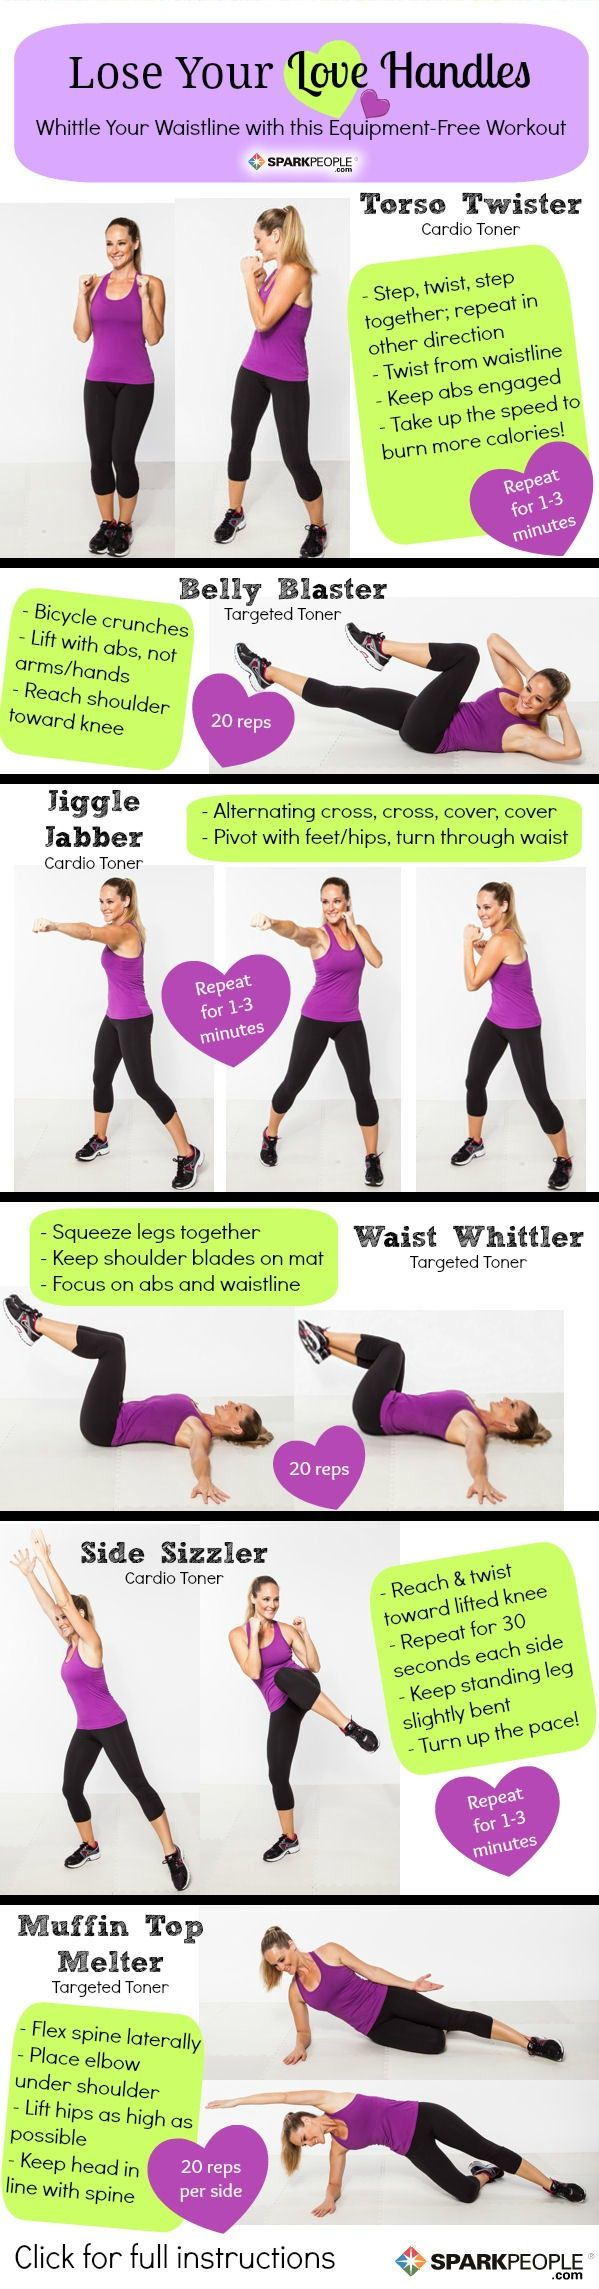 The 'Lose Your Love Handles' Workout